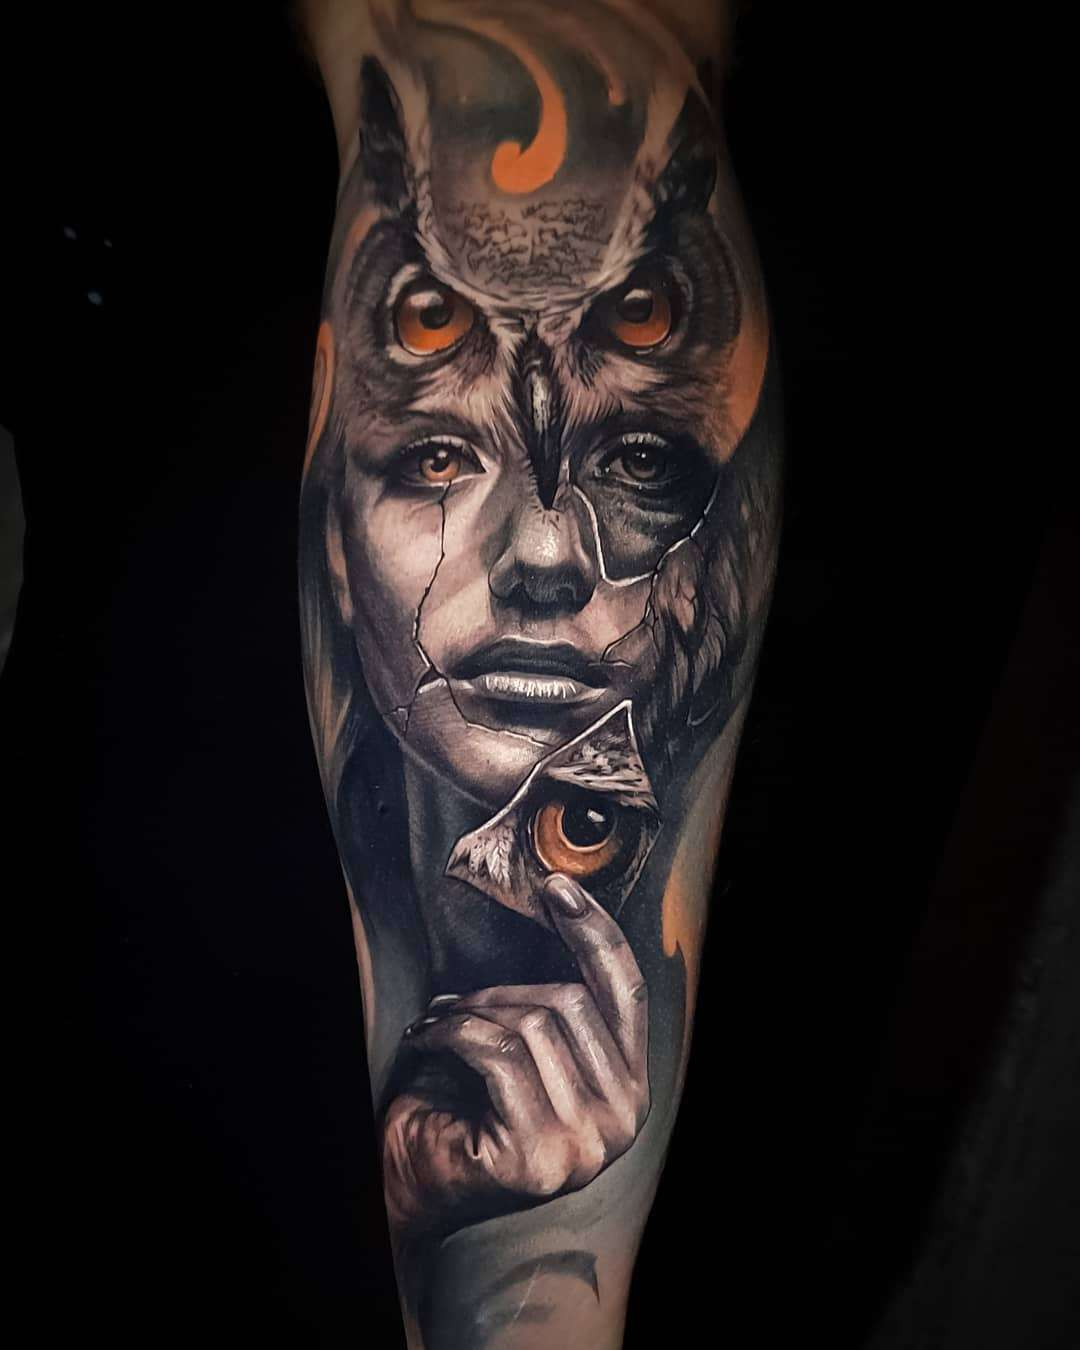 Tattoo artist Jayden Pengilly, color and black&grey authors portrait realism tattoo, surrealism | Australia